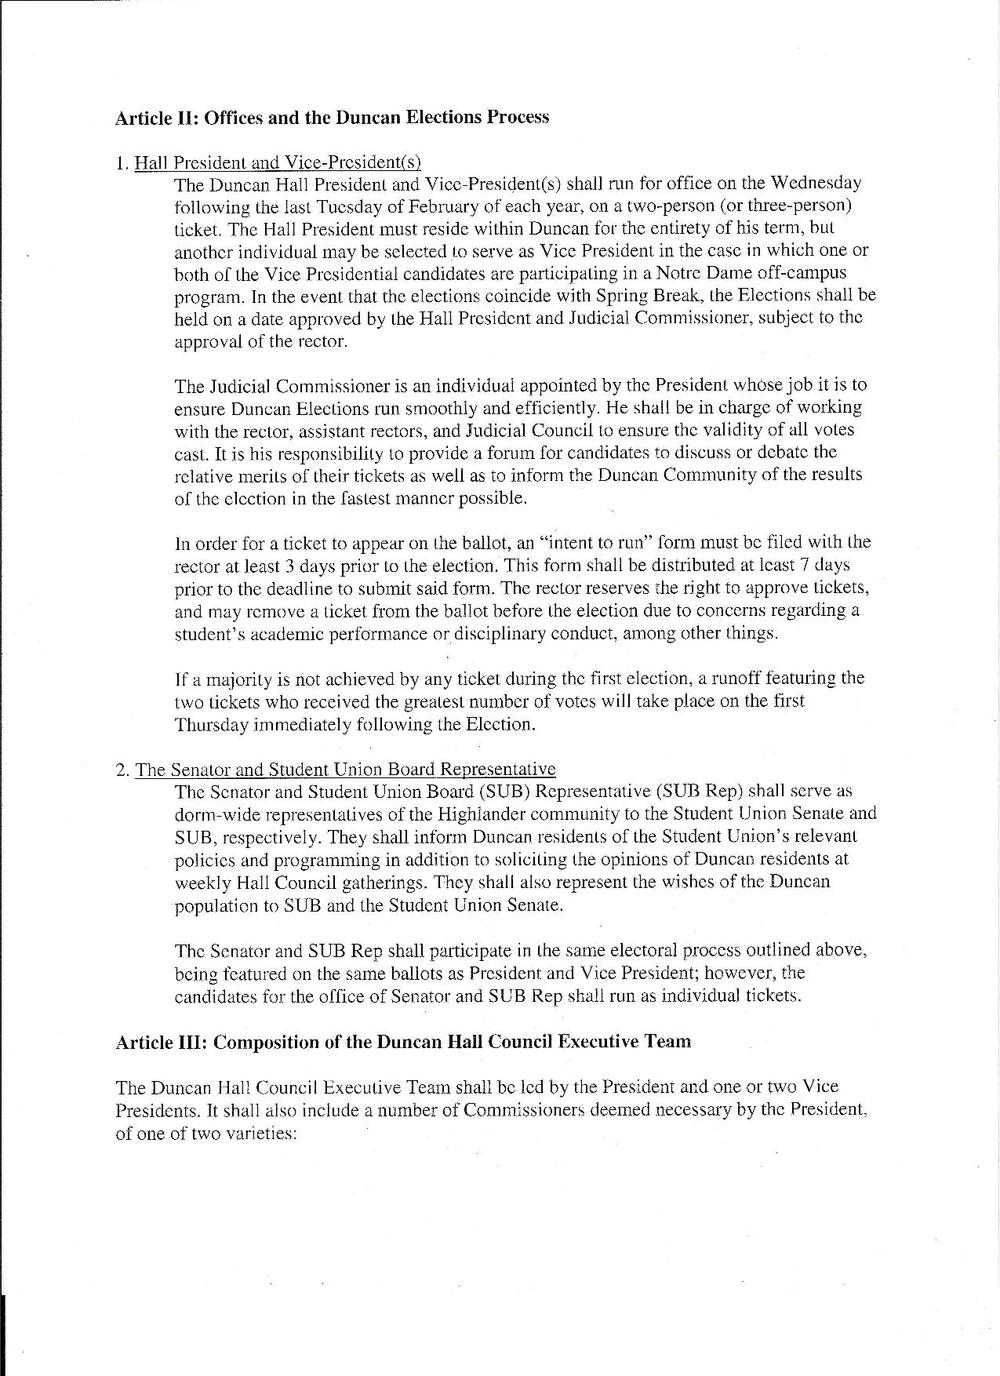 Duncan Hall Constitution April 2014-1-page-002.jpg